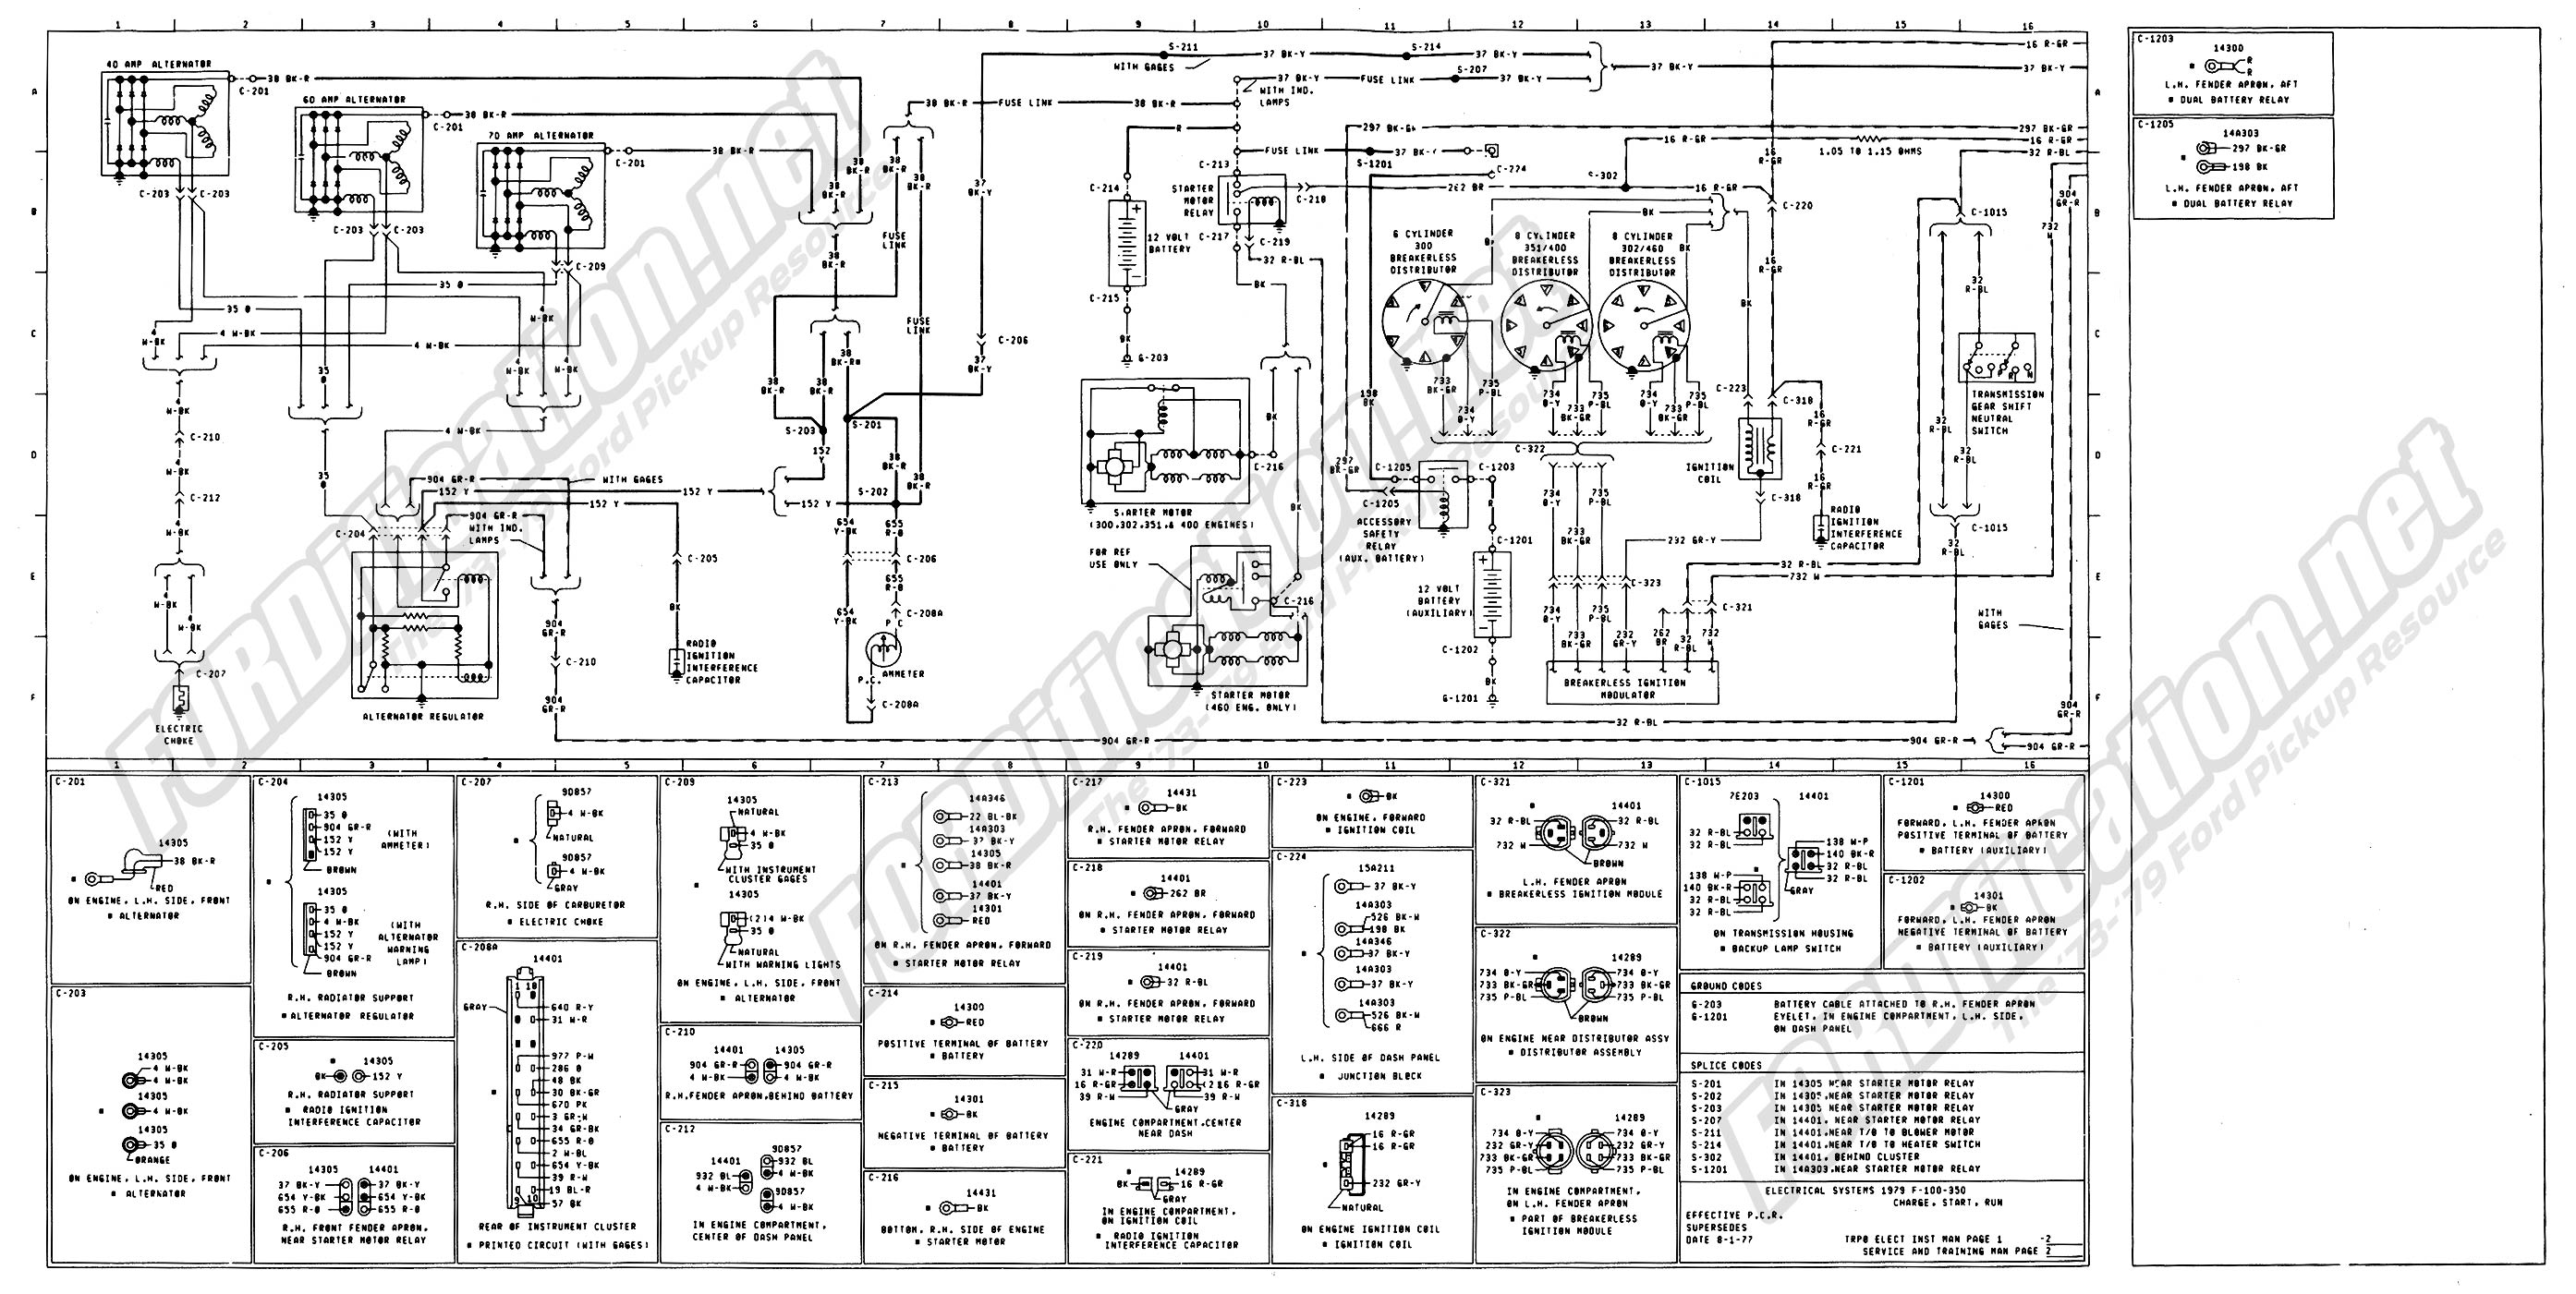 wiring_79master_2of9 1973 1979 ford truck wiring diagrams & schematics fordification net truck wiring diagrams at edmiracle.co